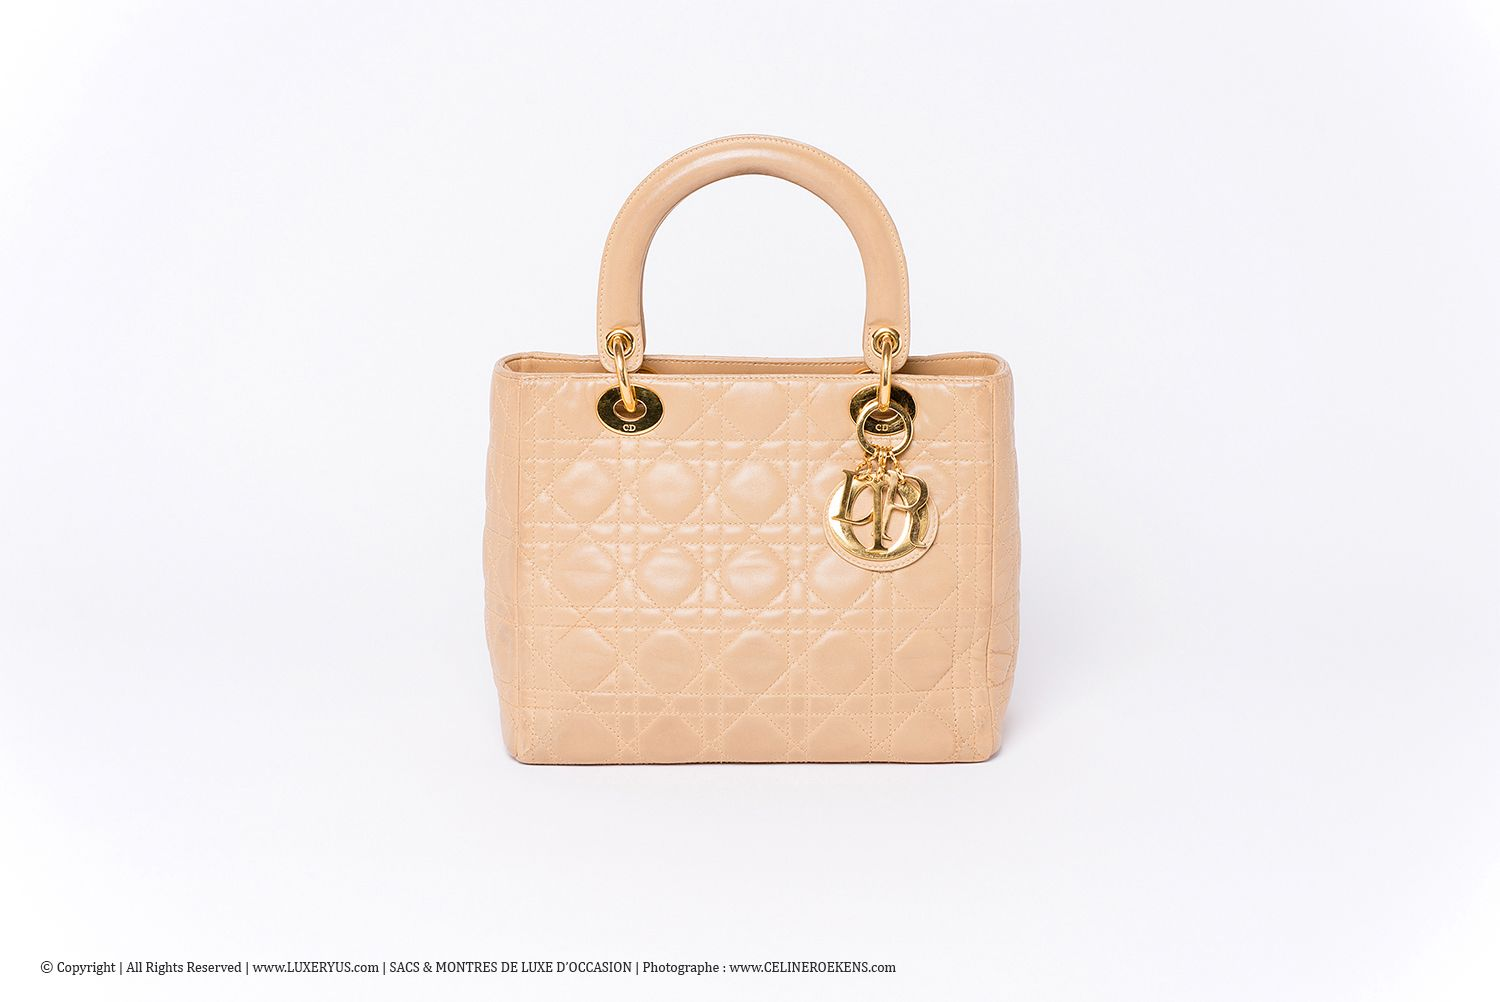 dc835e21c0c3 Sac à main Lady Dior Medium Authentique d occasion vintage en cuir Cannage  beige et